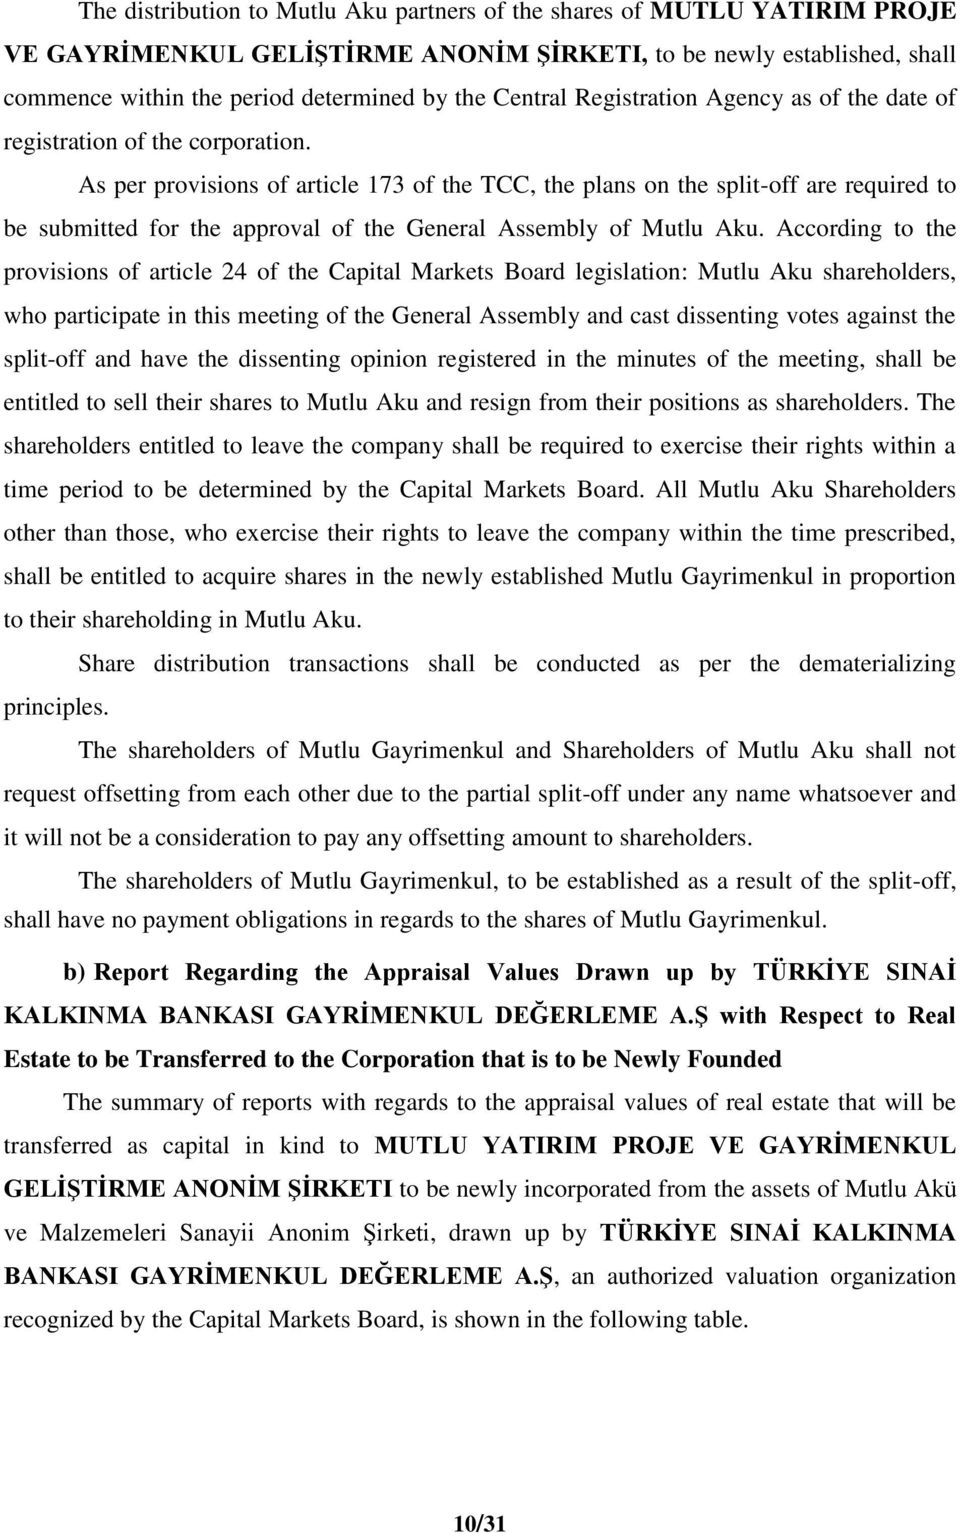 As per provisions of article 173 of the TCC, the plans on the split-off are required to be submitted for the approval of the General Assembly of Mutlu Aku.